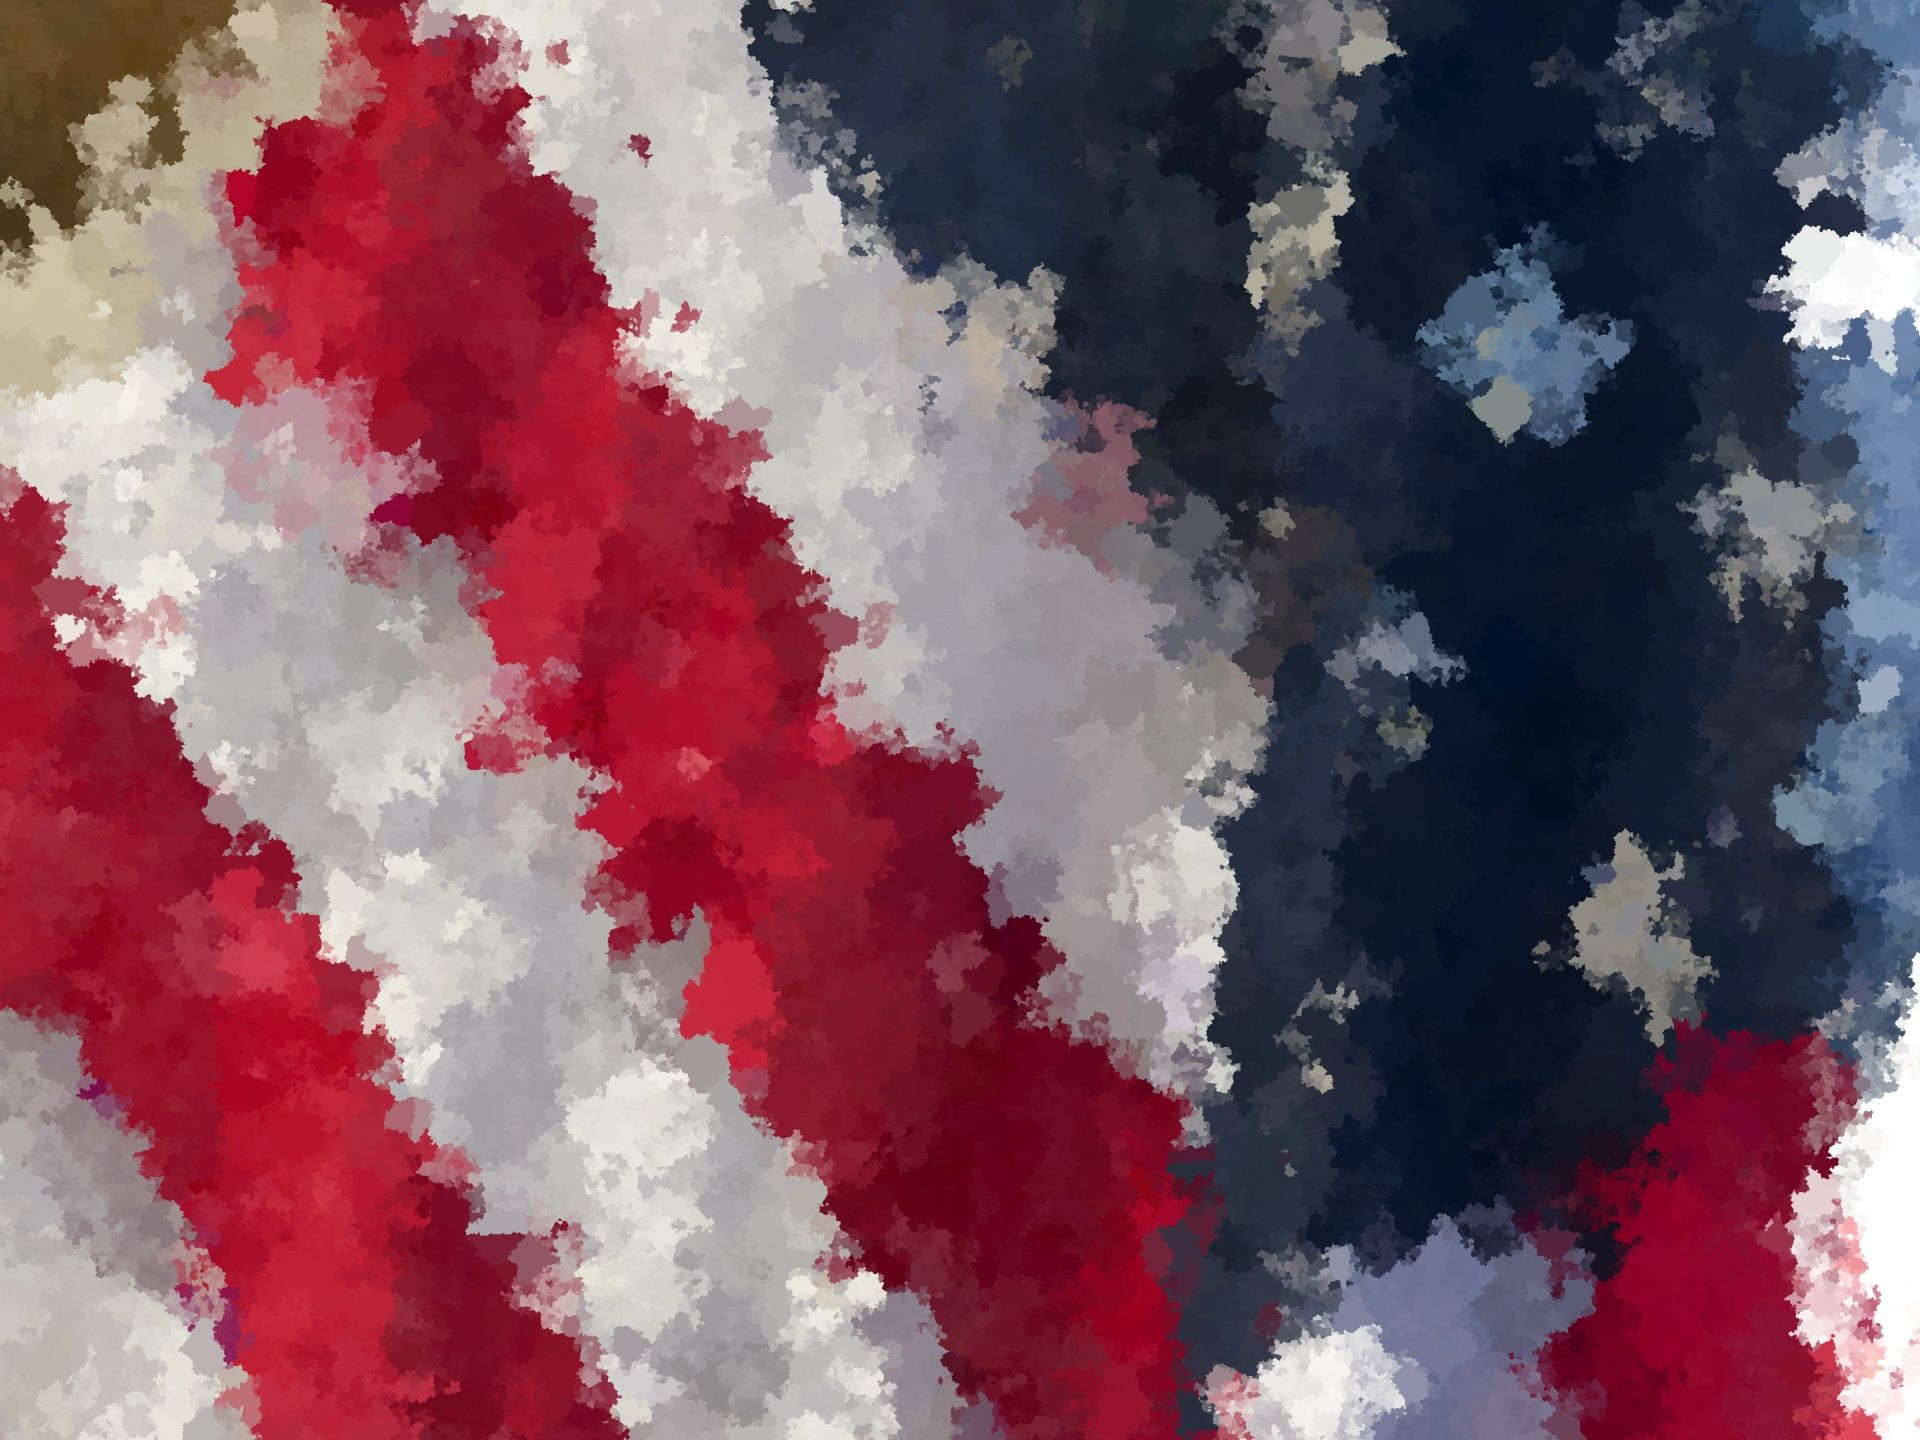 Artistic american flag background free stock photo